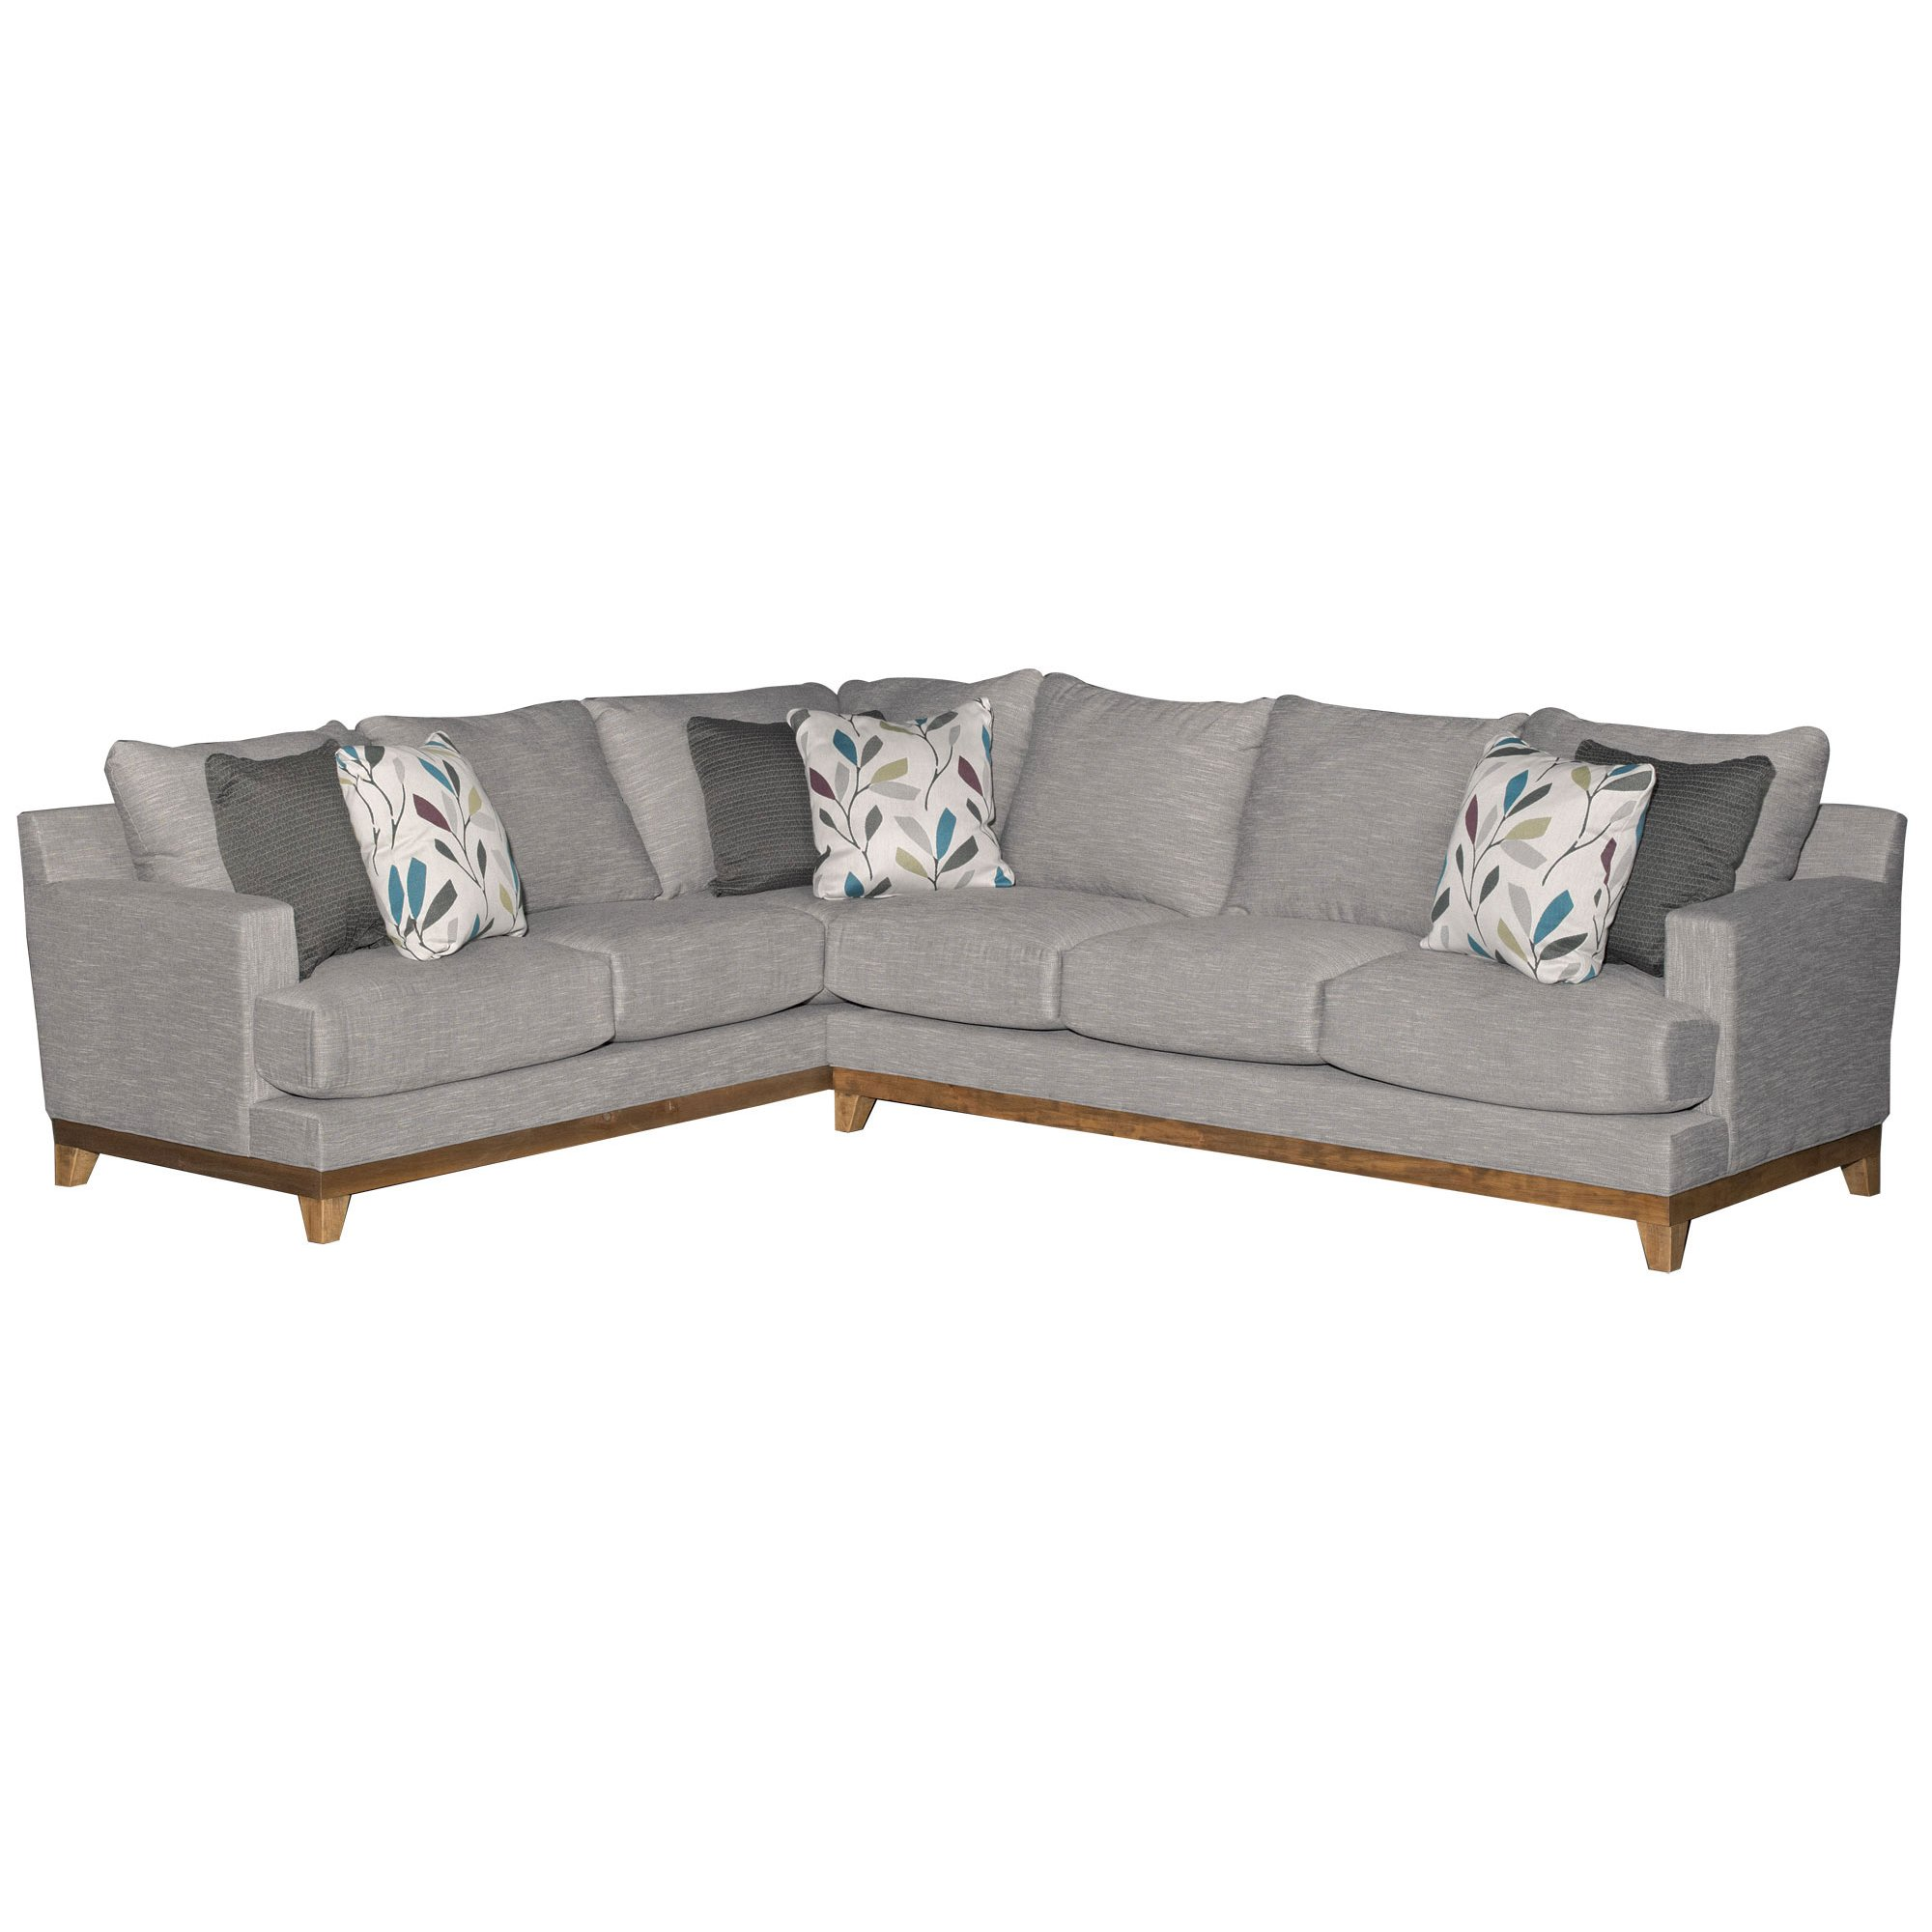 Contemporary Gray 2 Piece Sectional Sofa with RAF Sofa - Dayton